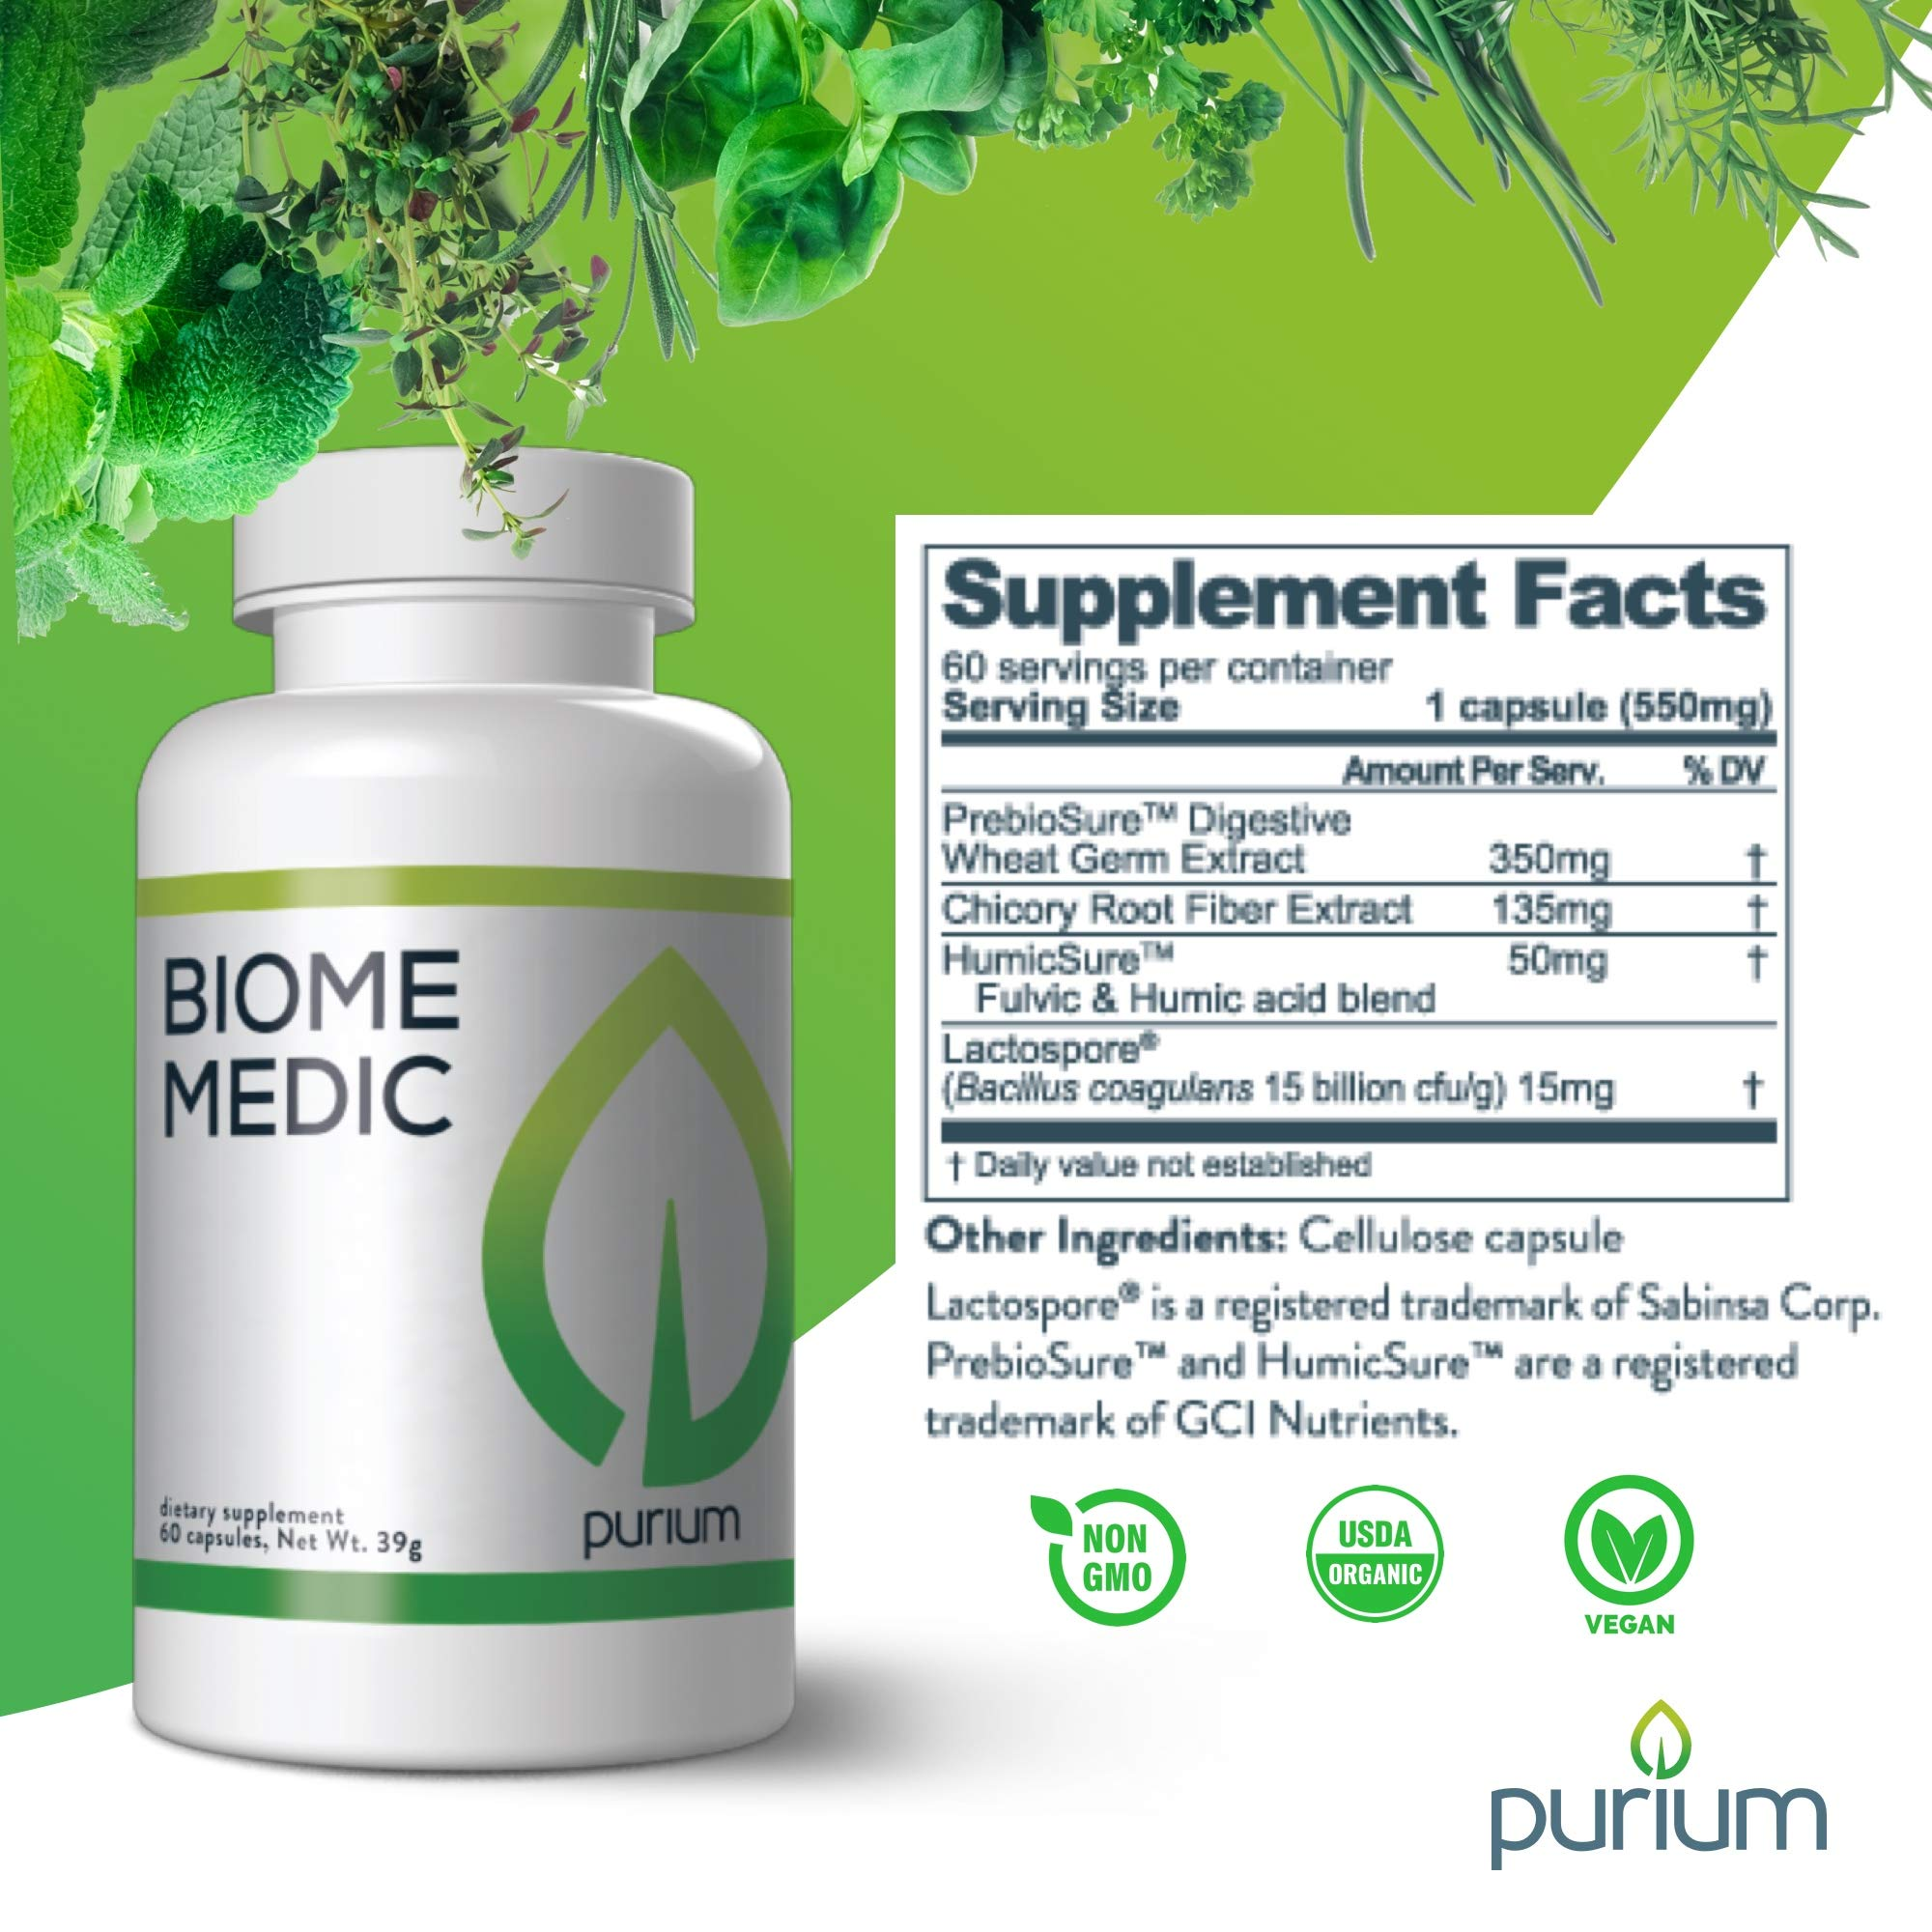 Purium Biome Medic - 60 Vegan Capsules - Gut Health Support Supplement, Removes GMO Toxins, Supports Good Bacteria, Repairs Microbiome - Vegetarian, Gluten Free - 60 Servings by Purium (Image #5)